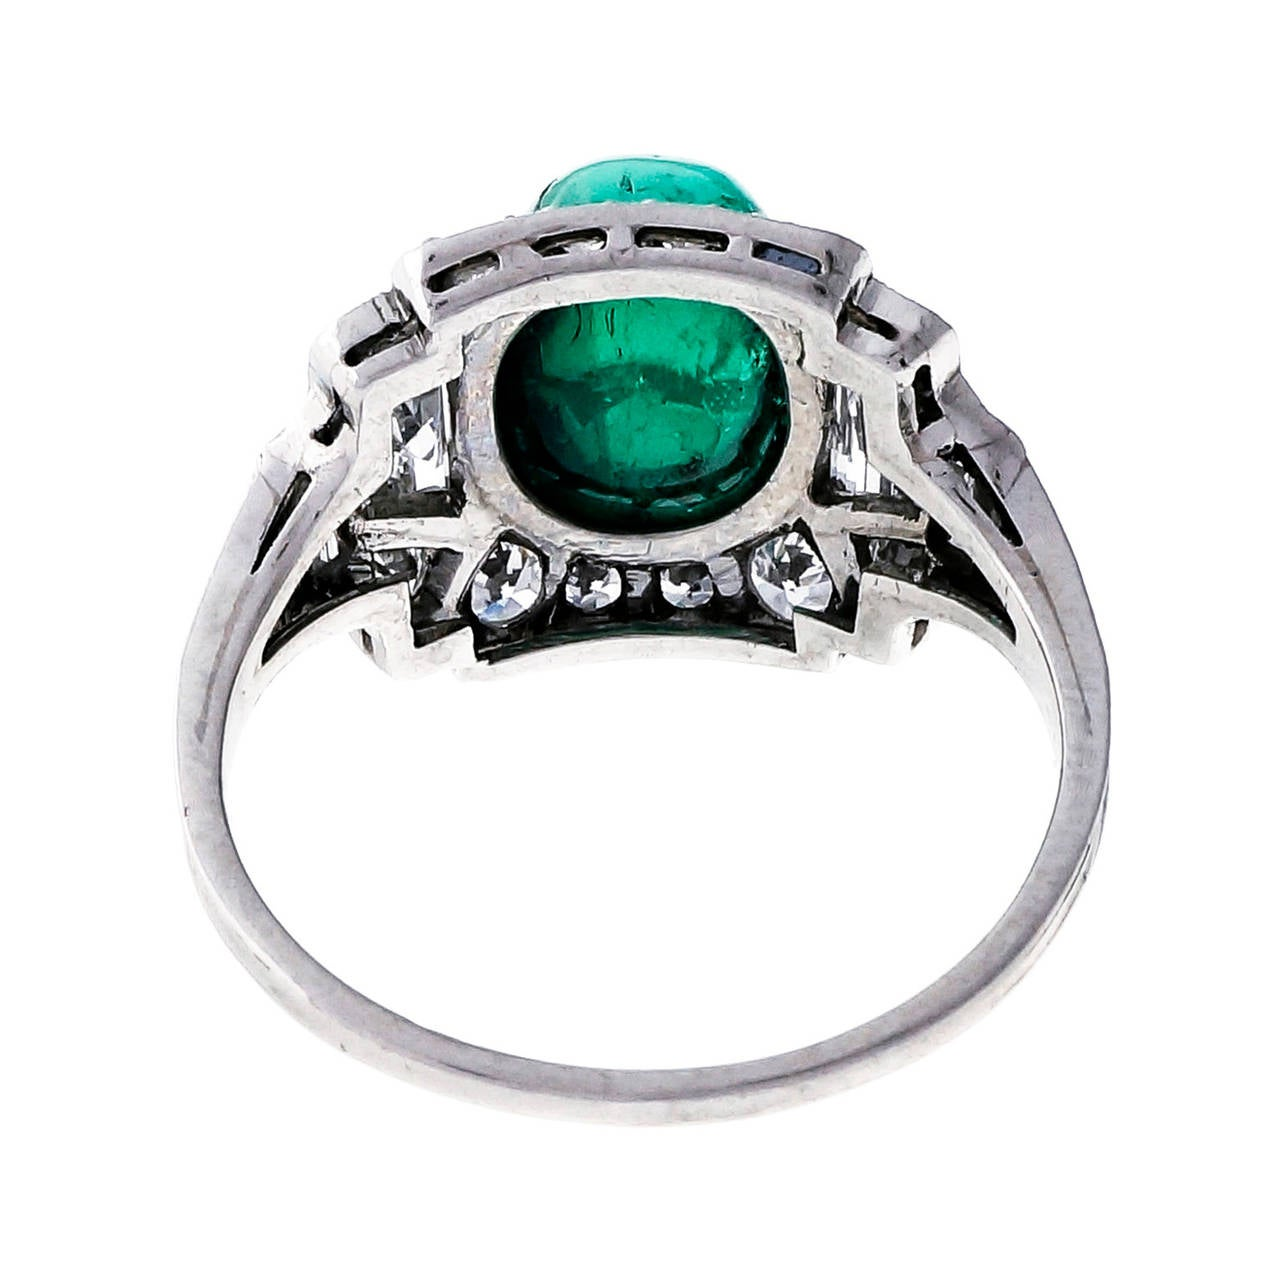 Sugarloaf Cabochon Colombian Emerald, Diamond, And Platinum Ring 3